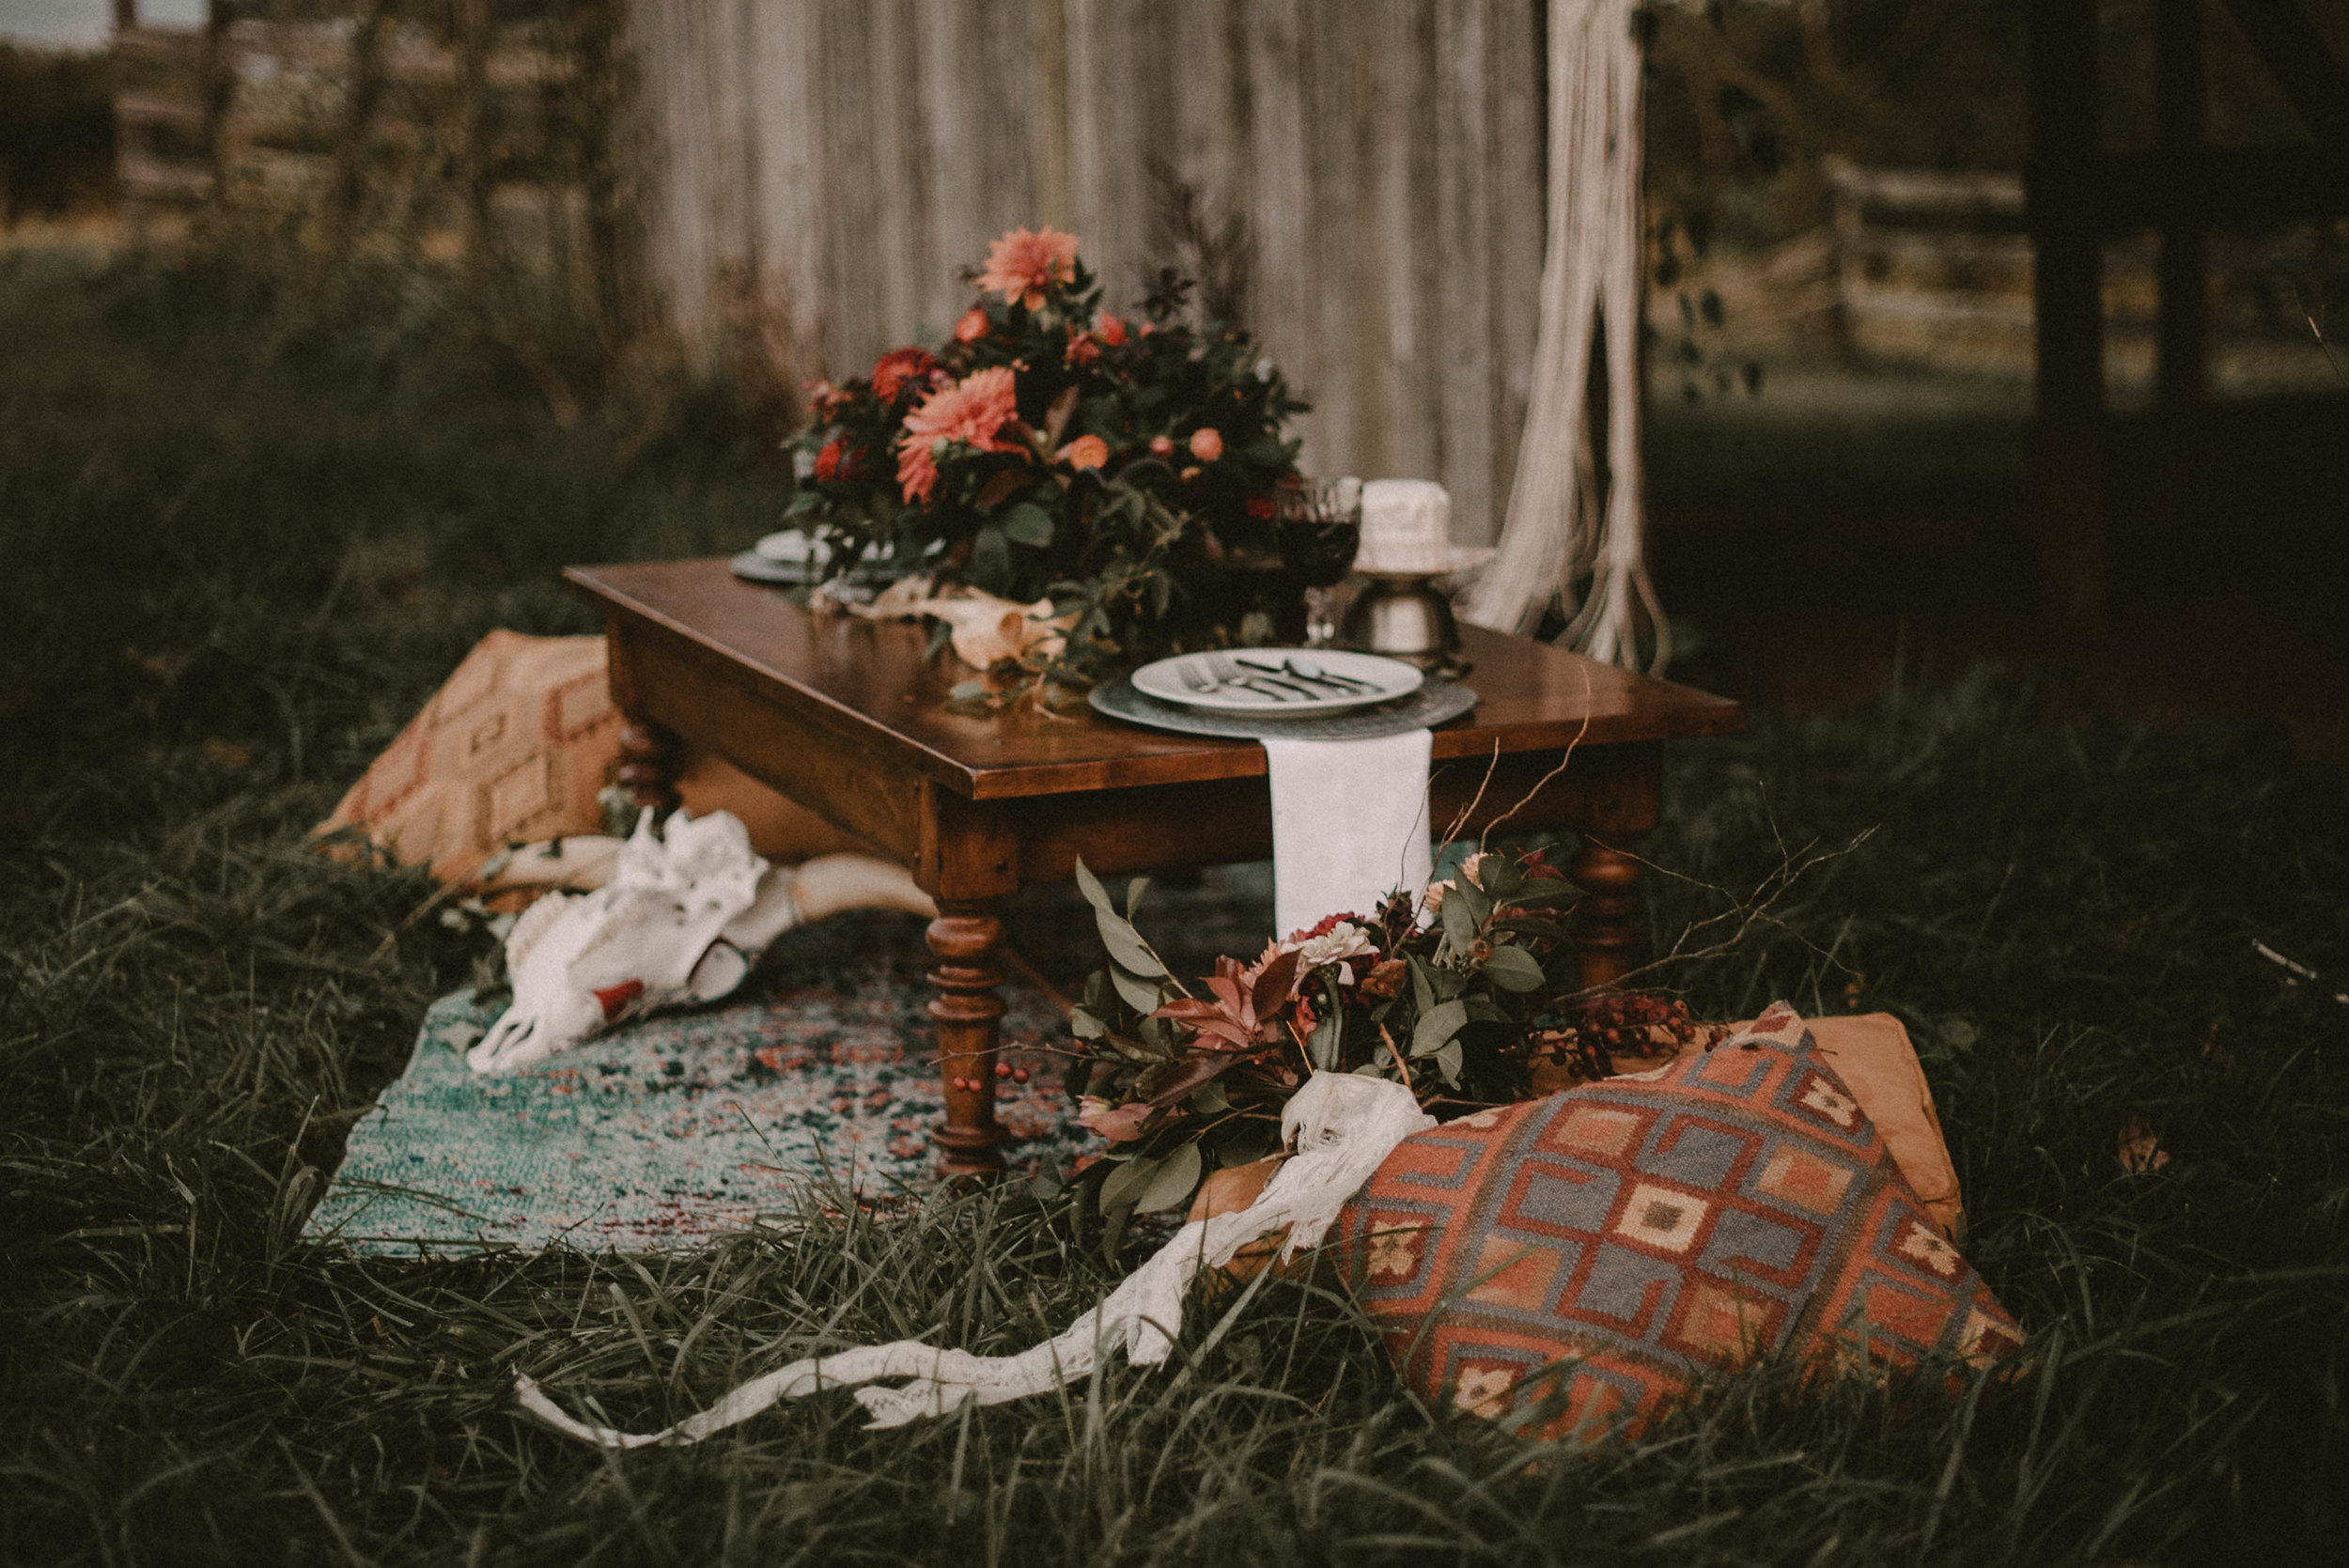 Low bride and groom table on grass